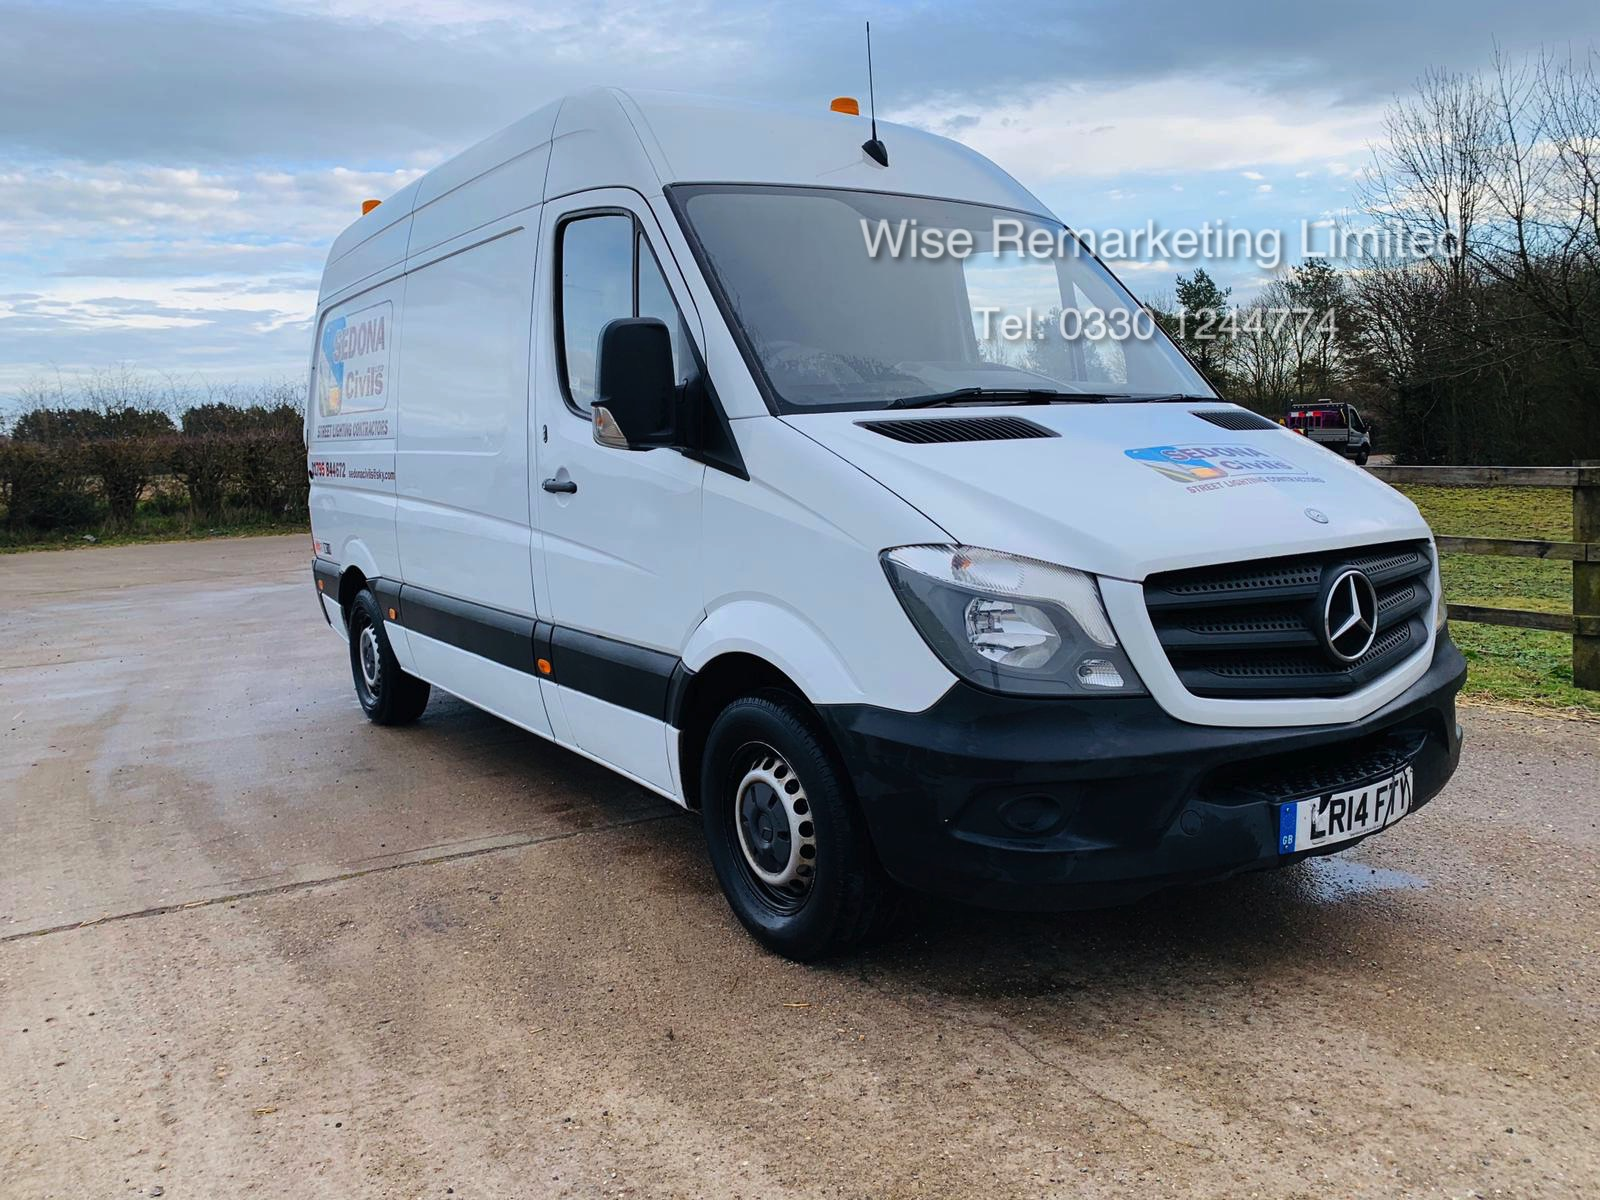 Lot 9a - Mercedes Sprinter 313 2.1 CDI - 2014 14 Reg - 6 Speed - Ply Lined - Company Owned